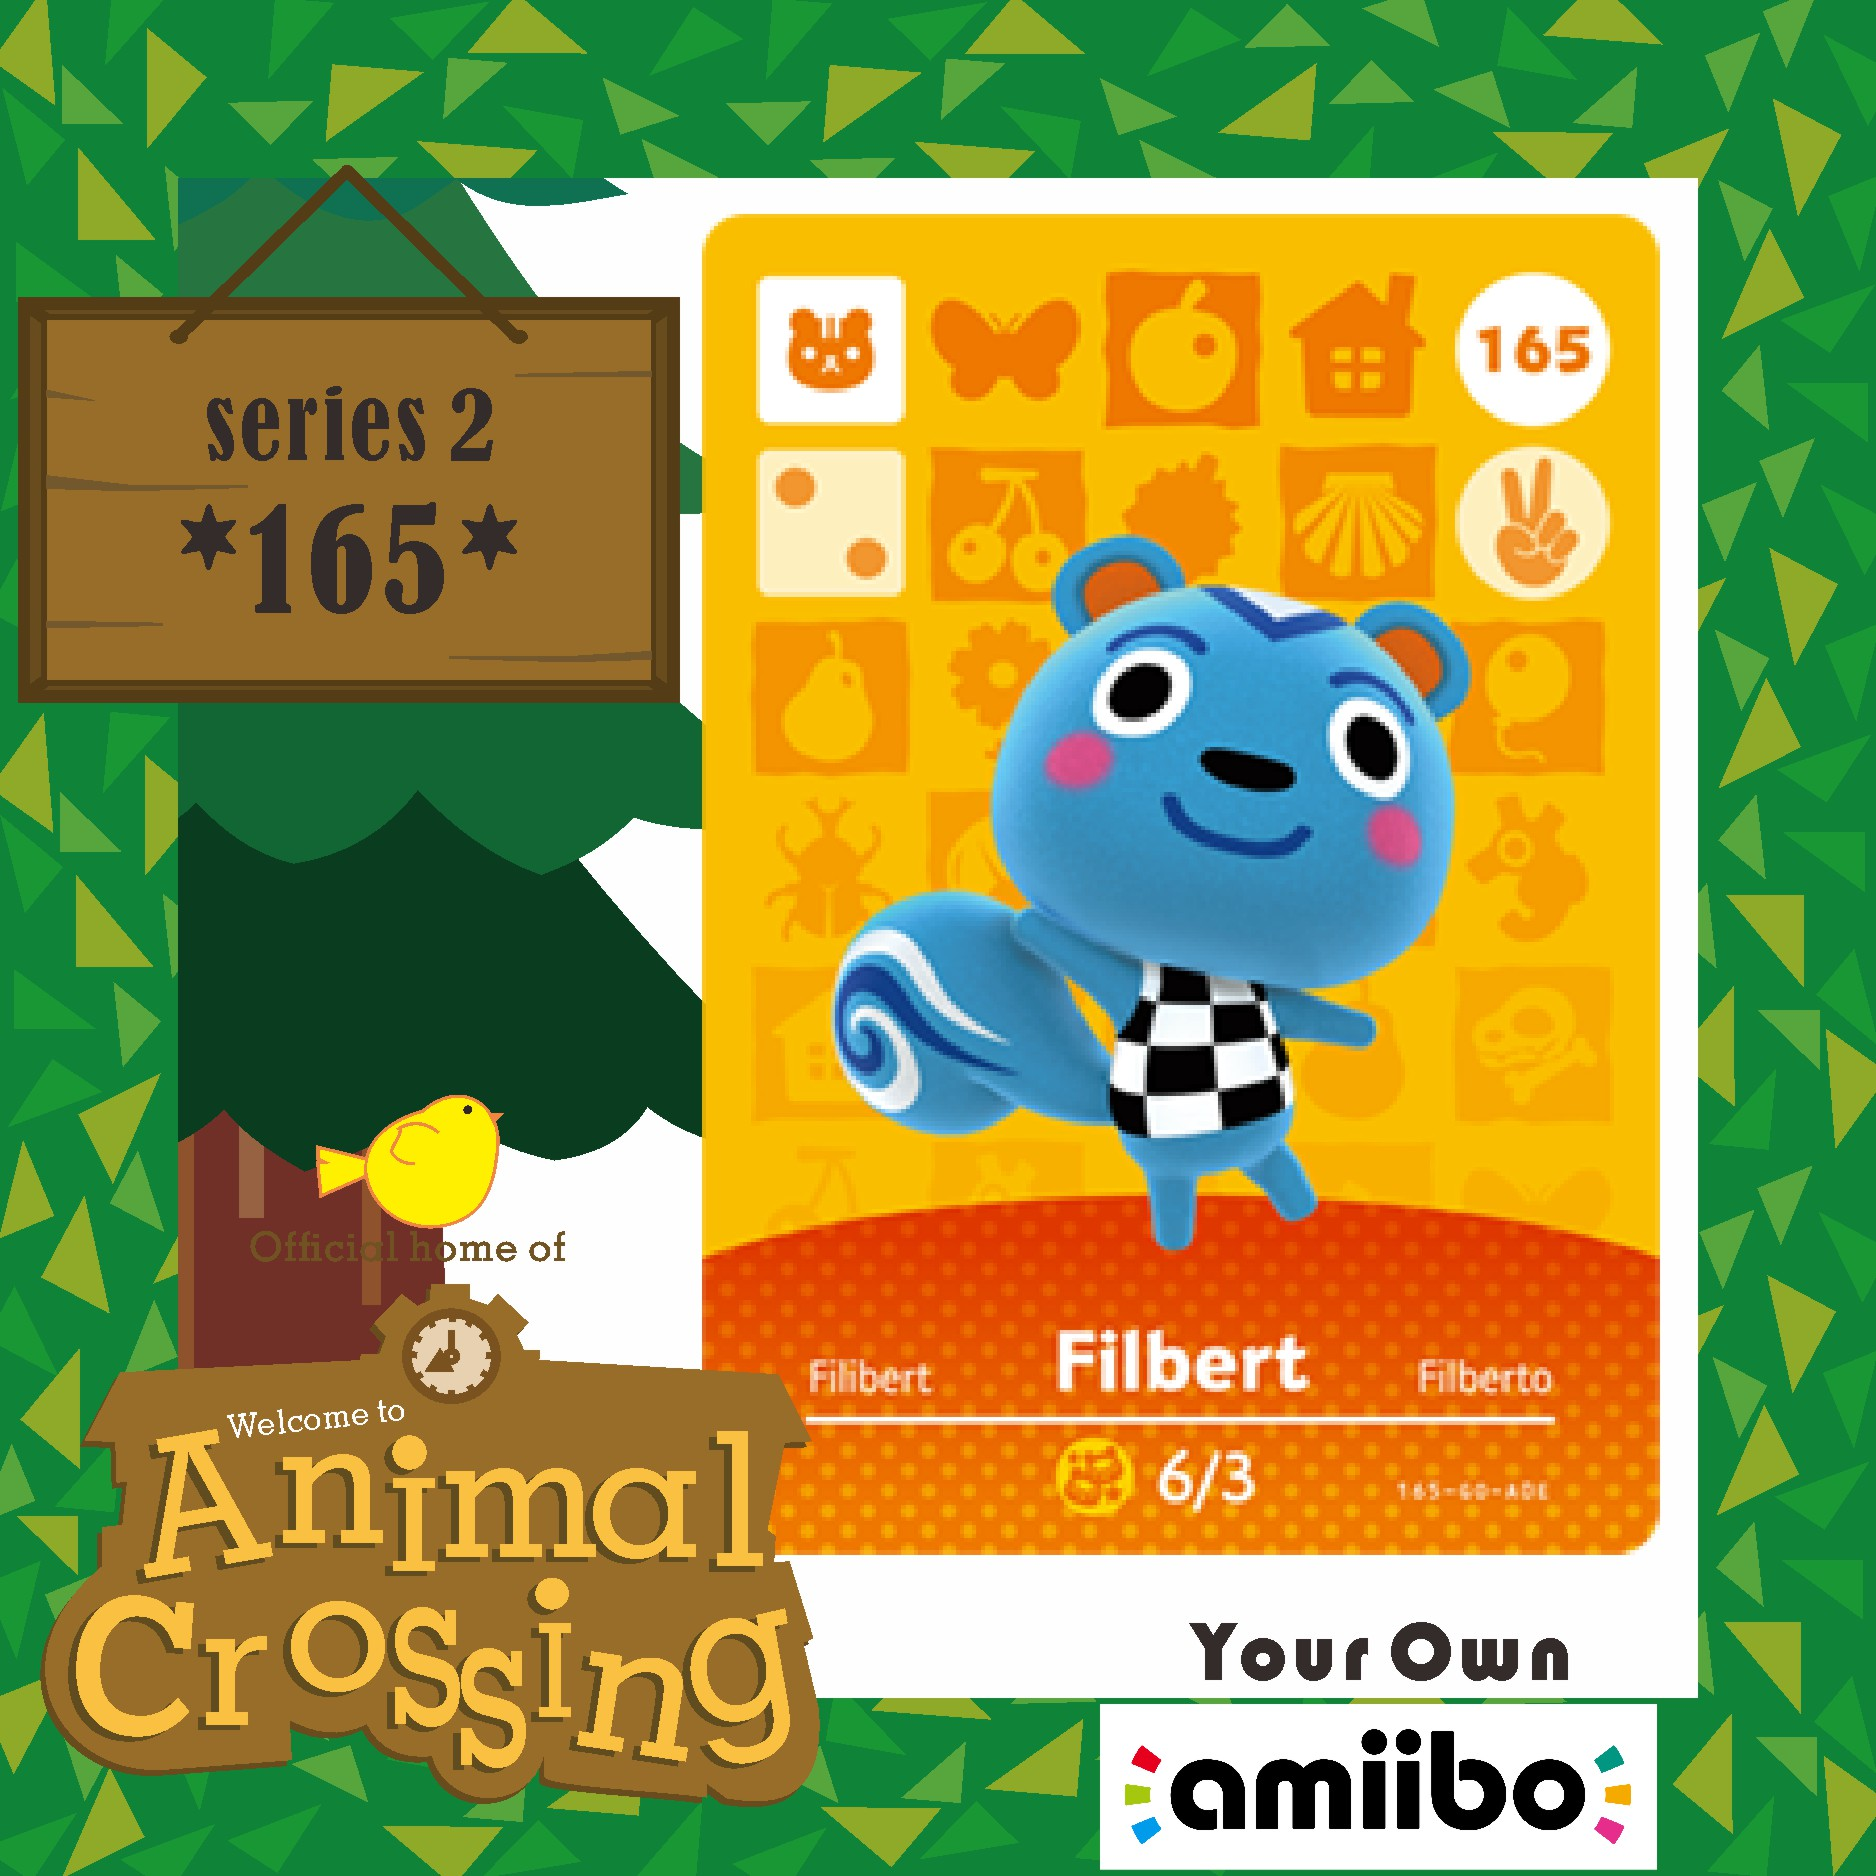 Amiibo Filbert Animal Crossing 165 Amiibo Card Filbert Animal Crossing New Horizons  Villager Card 165 Set Season Series 2